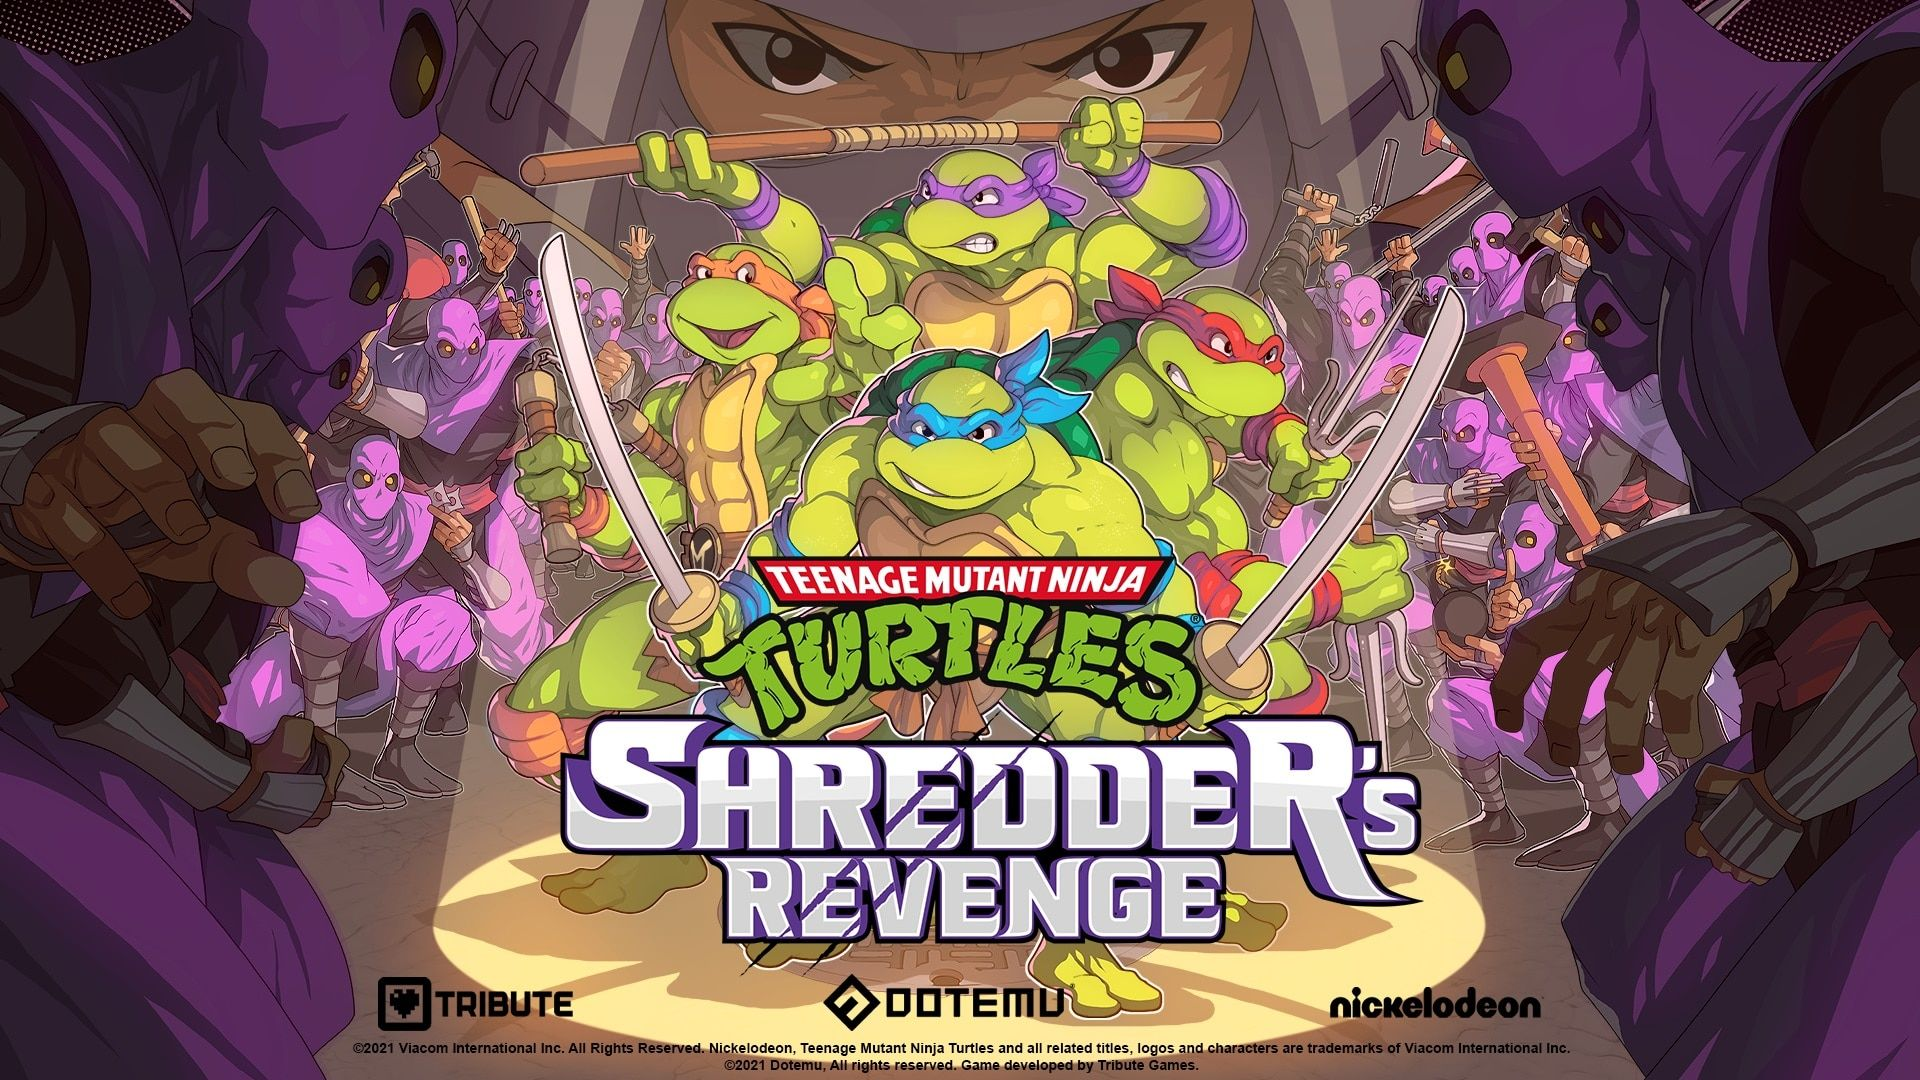 Radical Side Scrolling Brawler Teenage Mutant Ninja Turtles Shredder S Revenge Announced By Dotemu And Tribute Games Coming To Pc And Consoles In 2021 Teenage Mutant Ninja Turtles Teenage Mutant Ninja Teenage